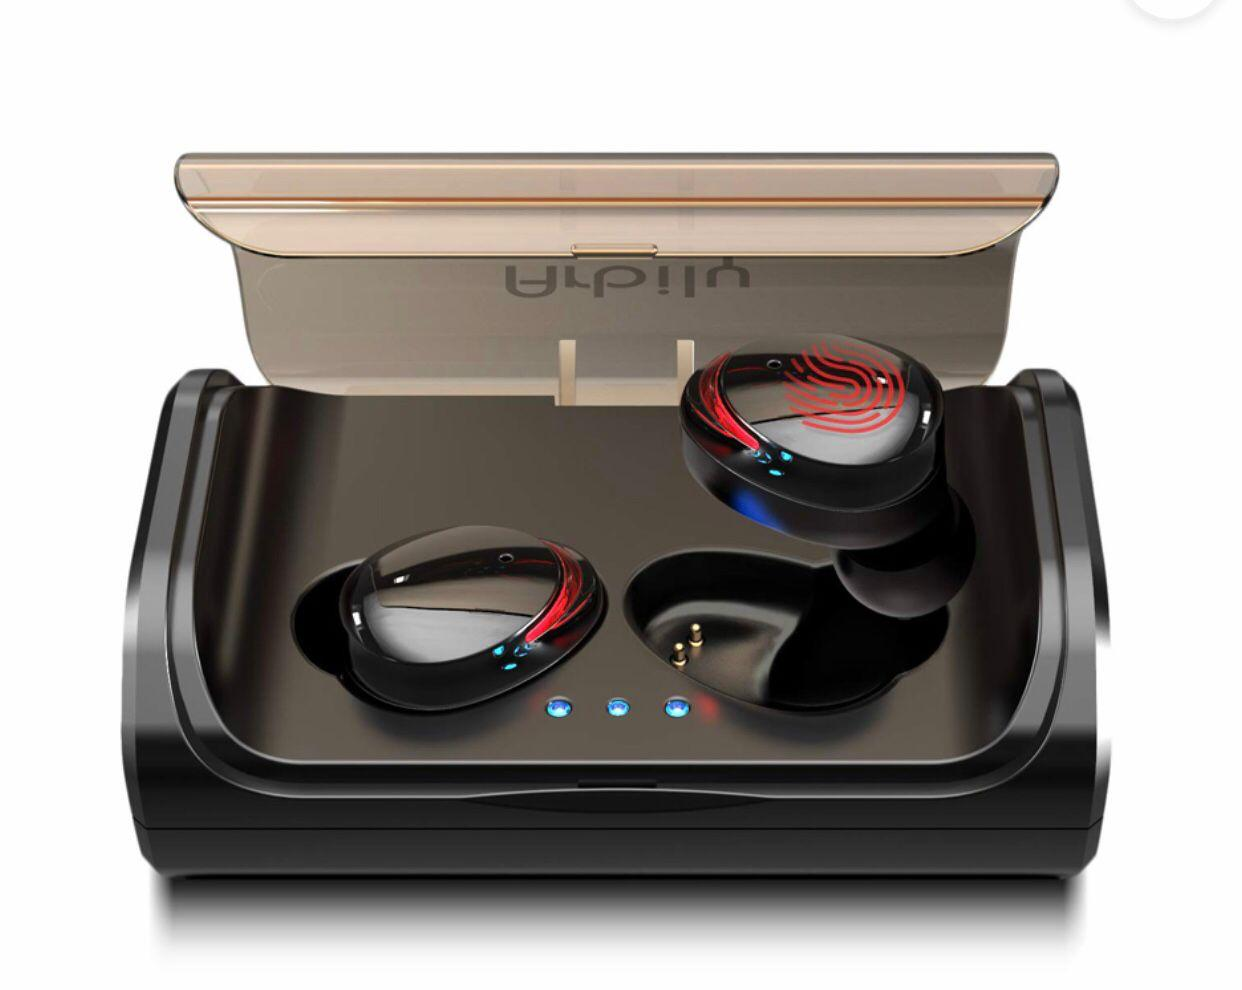 TWS T8 Bluetooth 5.0 True Wireless Headphones In-Ear Earbuds Touch Control Stereo Earphone IPX6 Waterproof Sports Headset with Dual Microphone Charging Box